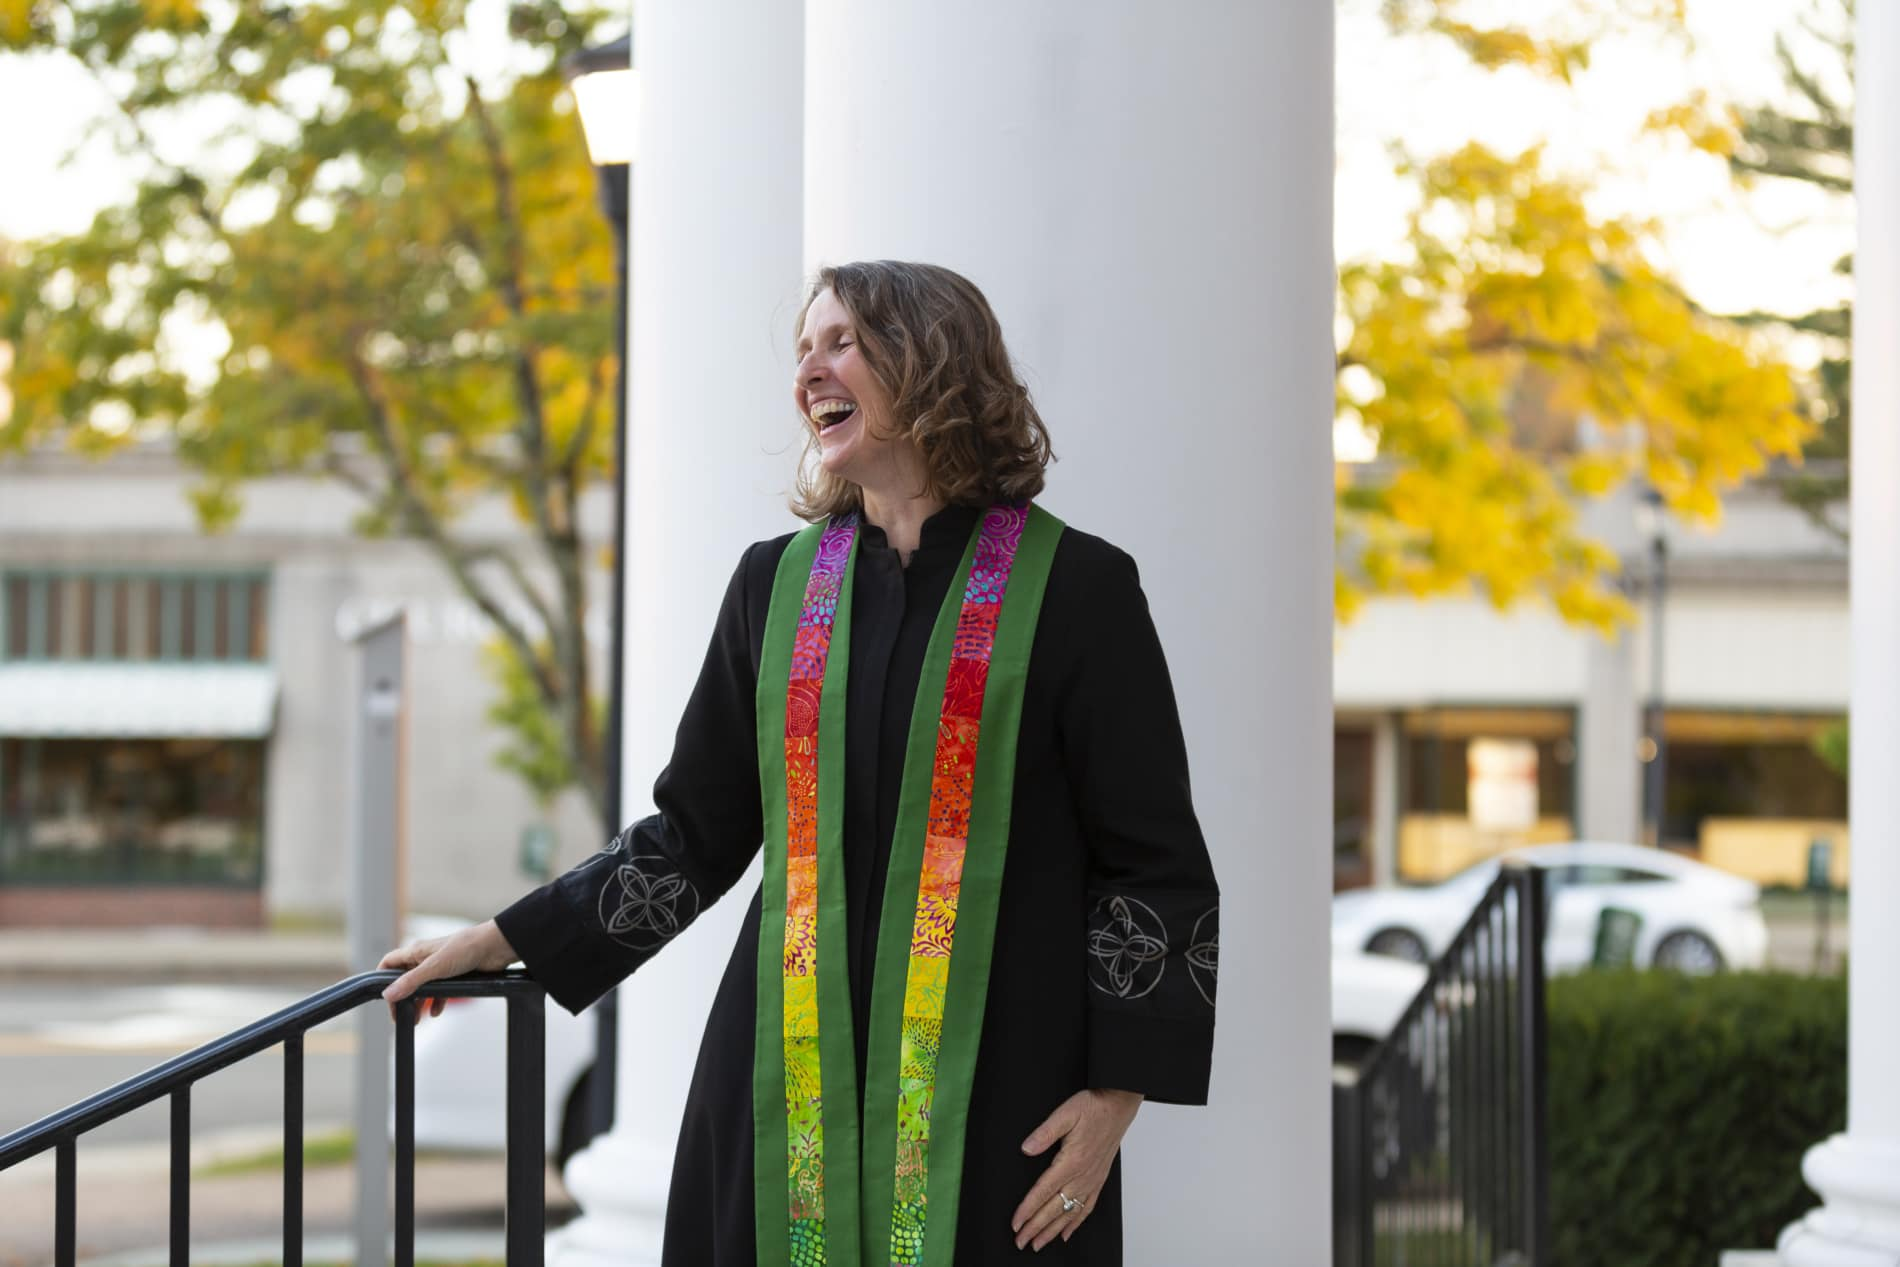 A pastor smiles as she greets people outside of church